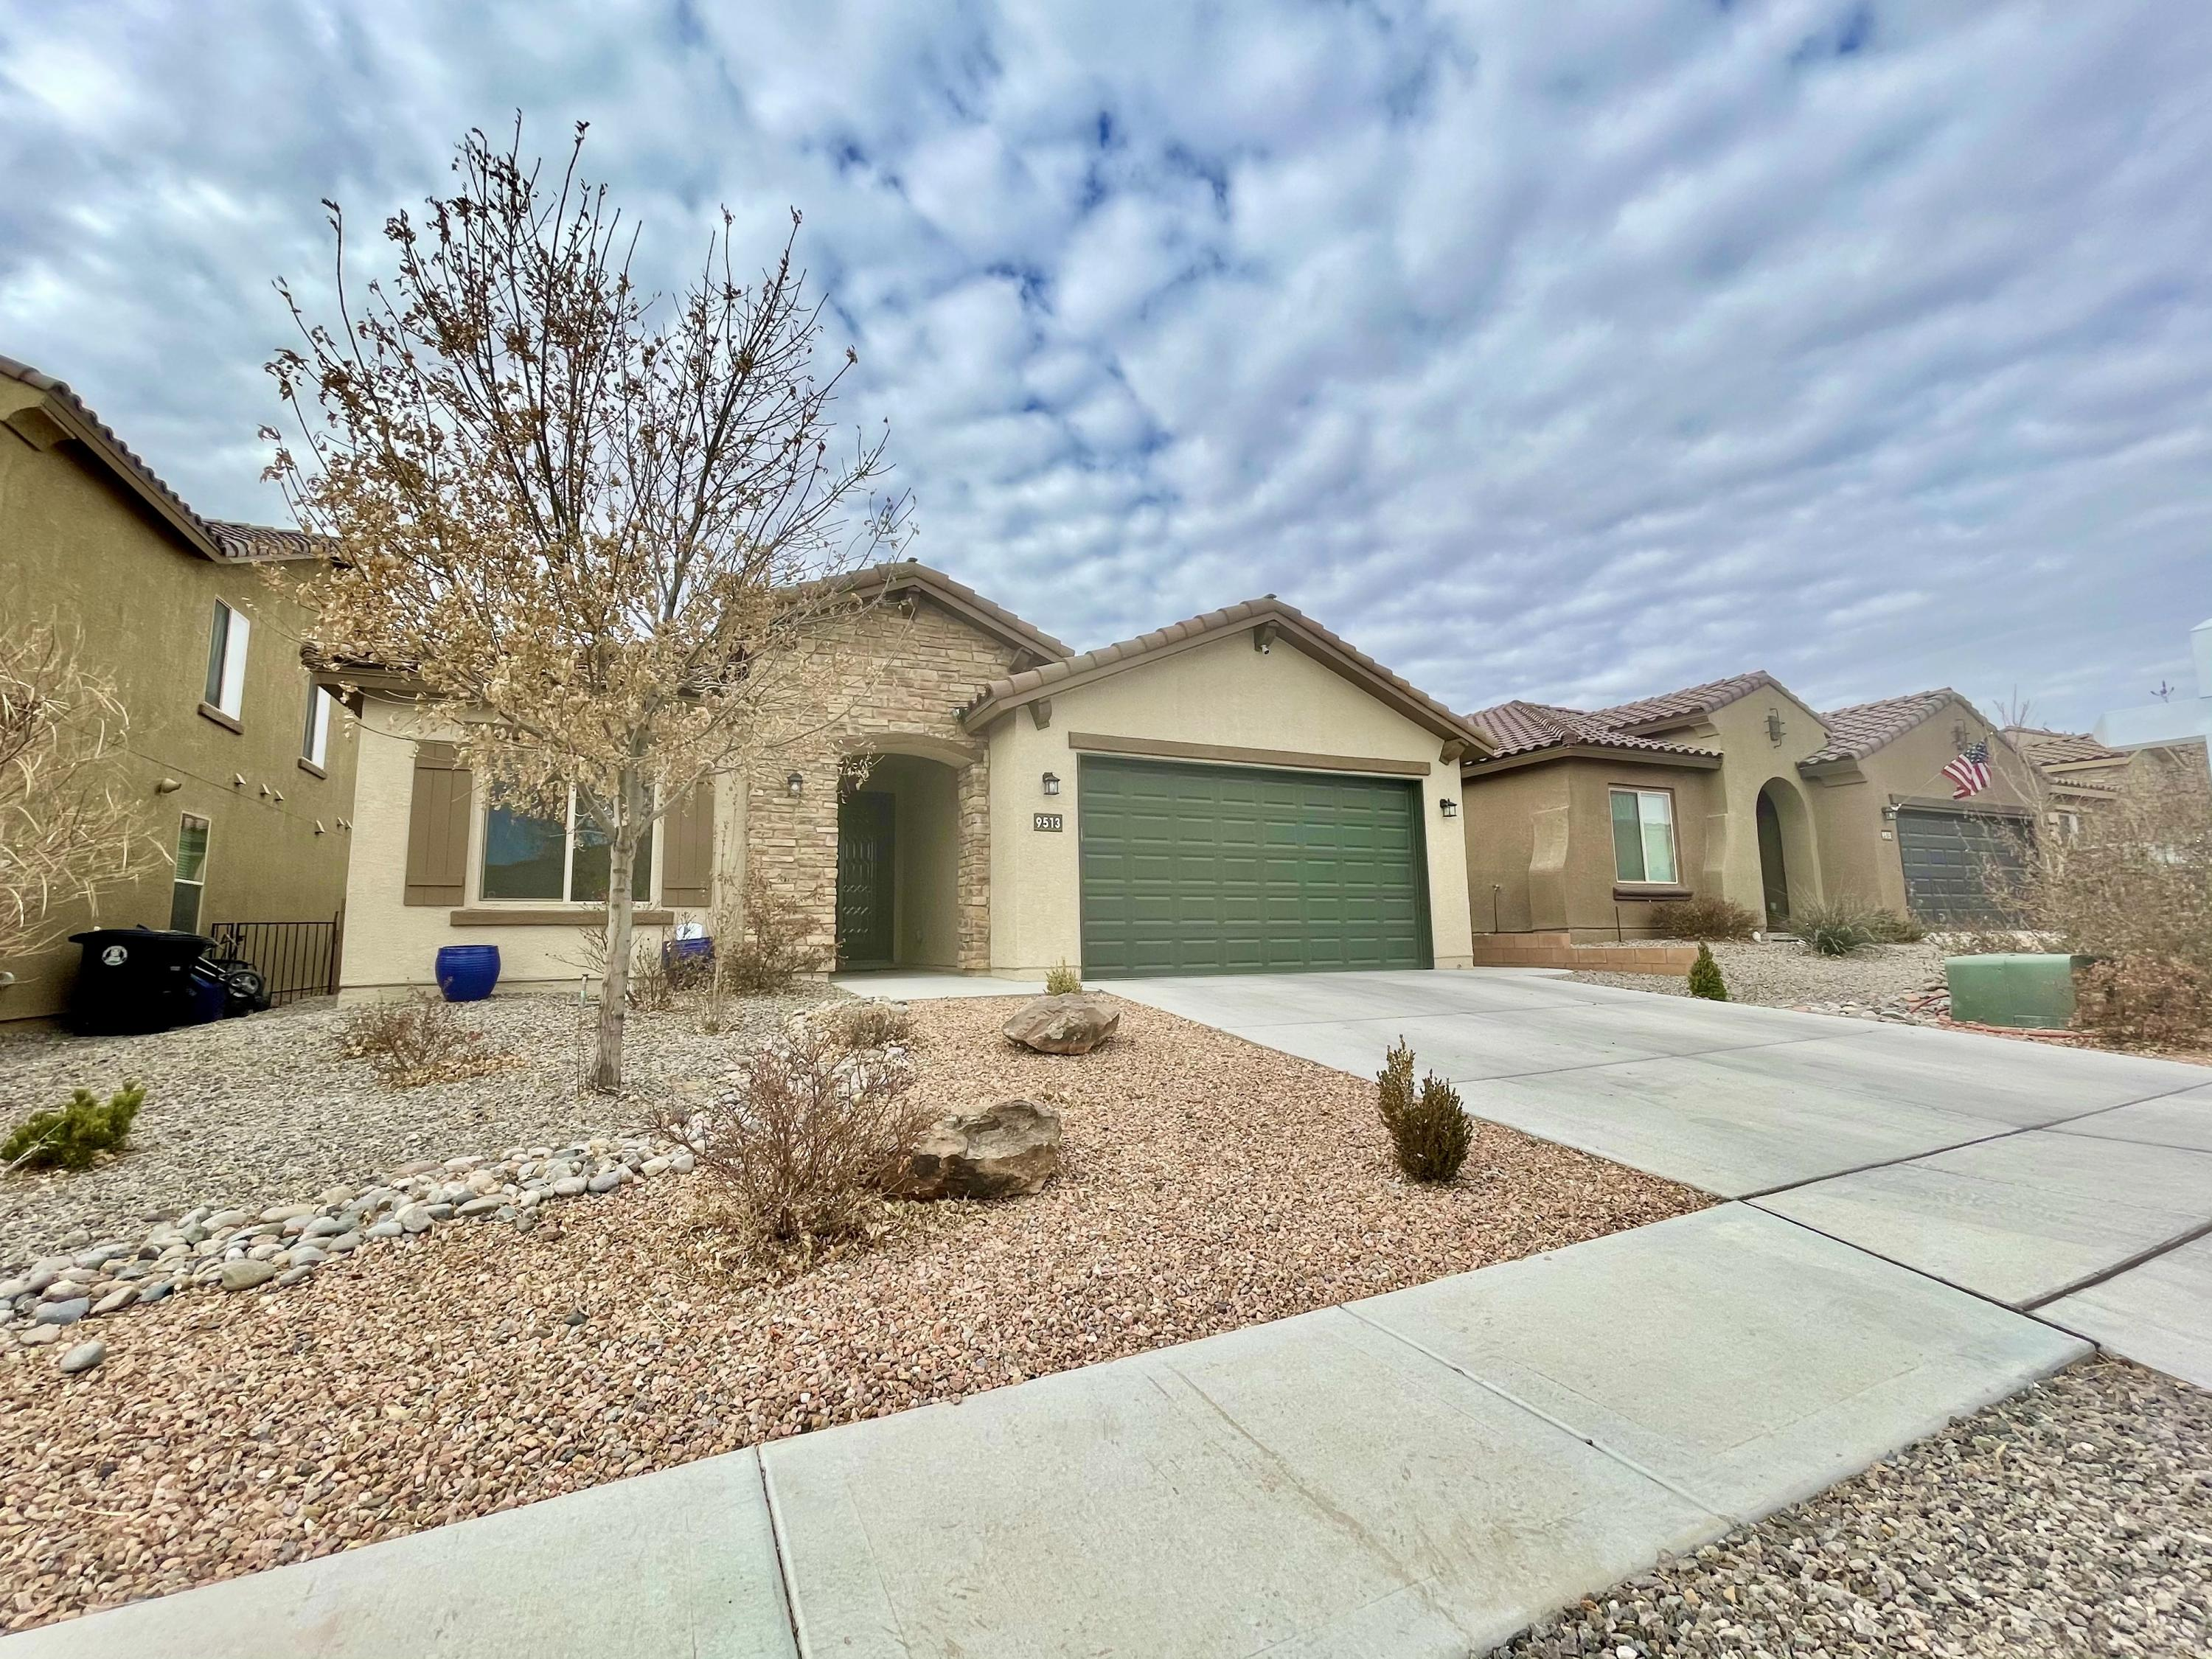 This is it! Very clean Pulte in the sought after Boulders subdivision.  Pride of ownership can be seen throughout. This one story, 3 bedroom 2 bath 3 car garage (tandem) home has several upgrades. 20 inch tiles, granite countertops, Maple cabinetry stainless steel range, microwave and dishwasher, gas log fireplace,  5 piece master bathroom and landscaped front and backyard.  The covered patio is perfect for outdoor dining and gatherings with friends and family. Kitchen opens up to living area and the 9 foot ceilings make the area feel even bigger! Pulte craftsmanship is apparent through every door of this beautiful home.  Make your appointment today!